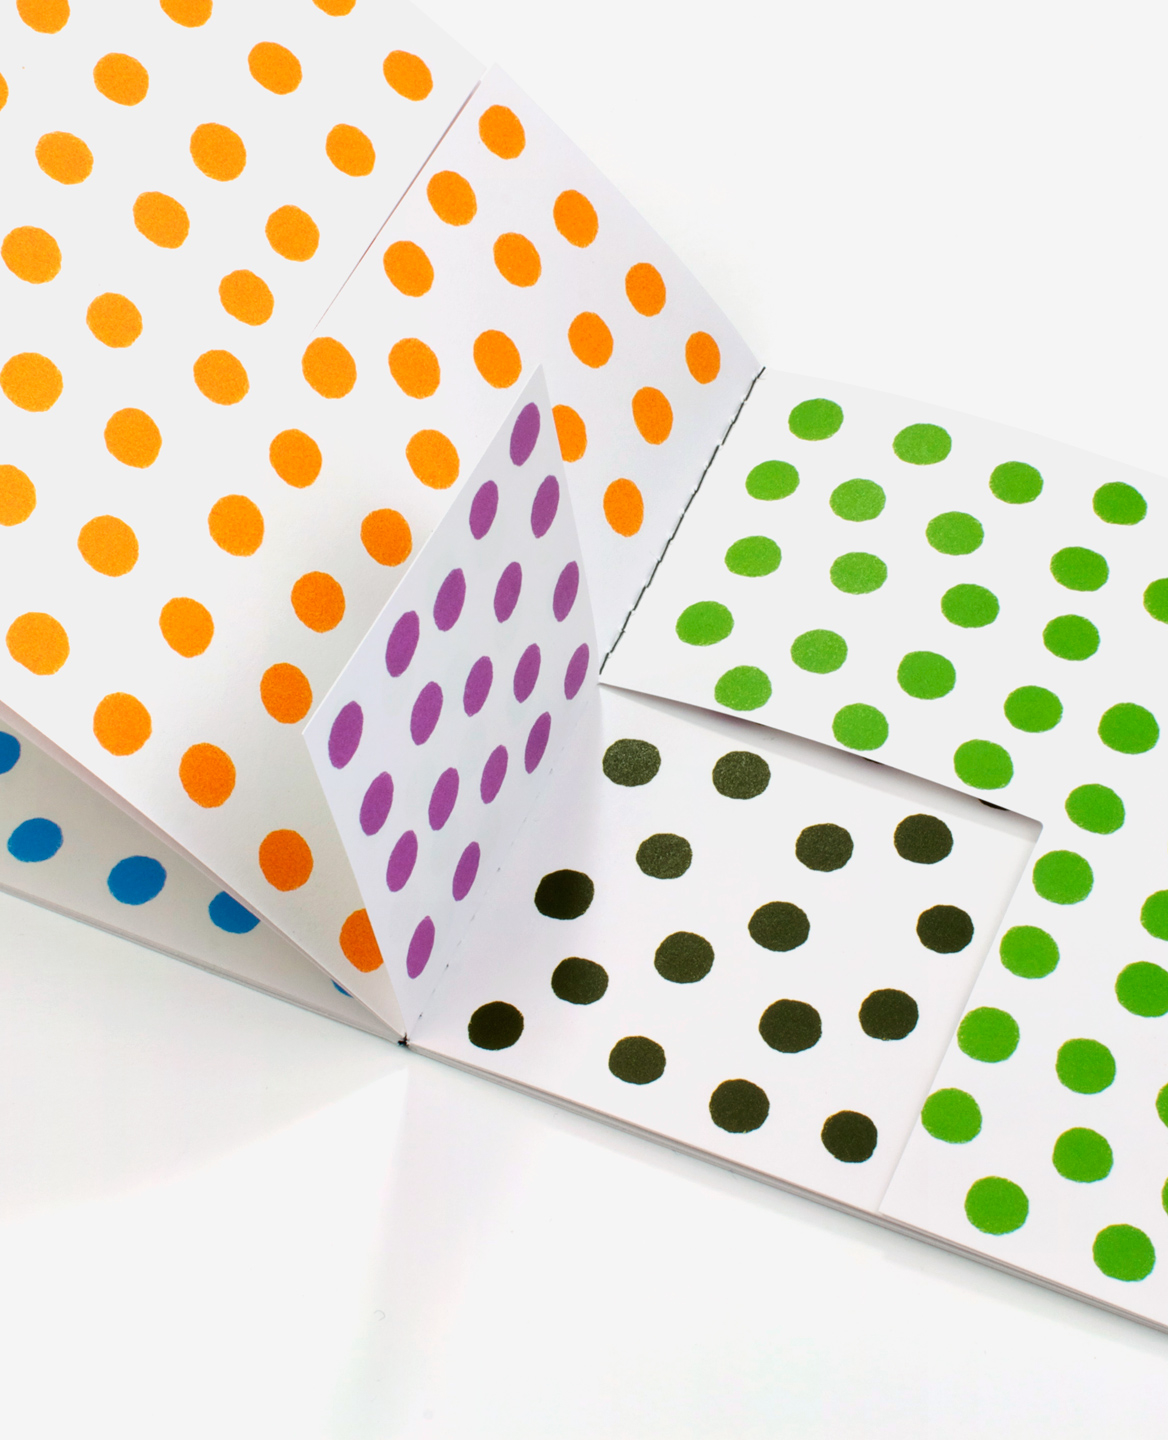 Detail of a folding in the book Dots by Antonio Ladrillo published by Éditions du livre